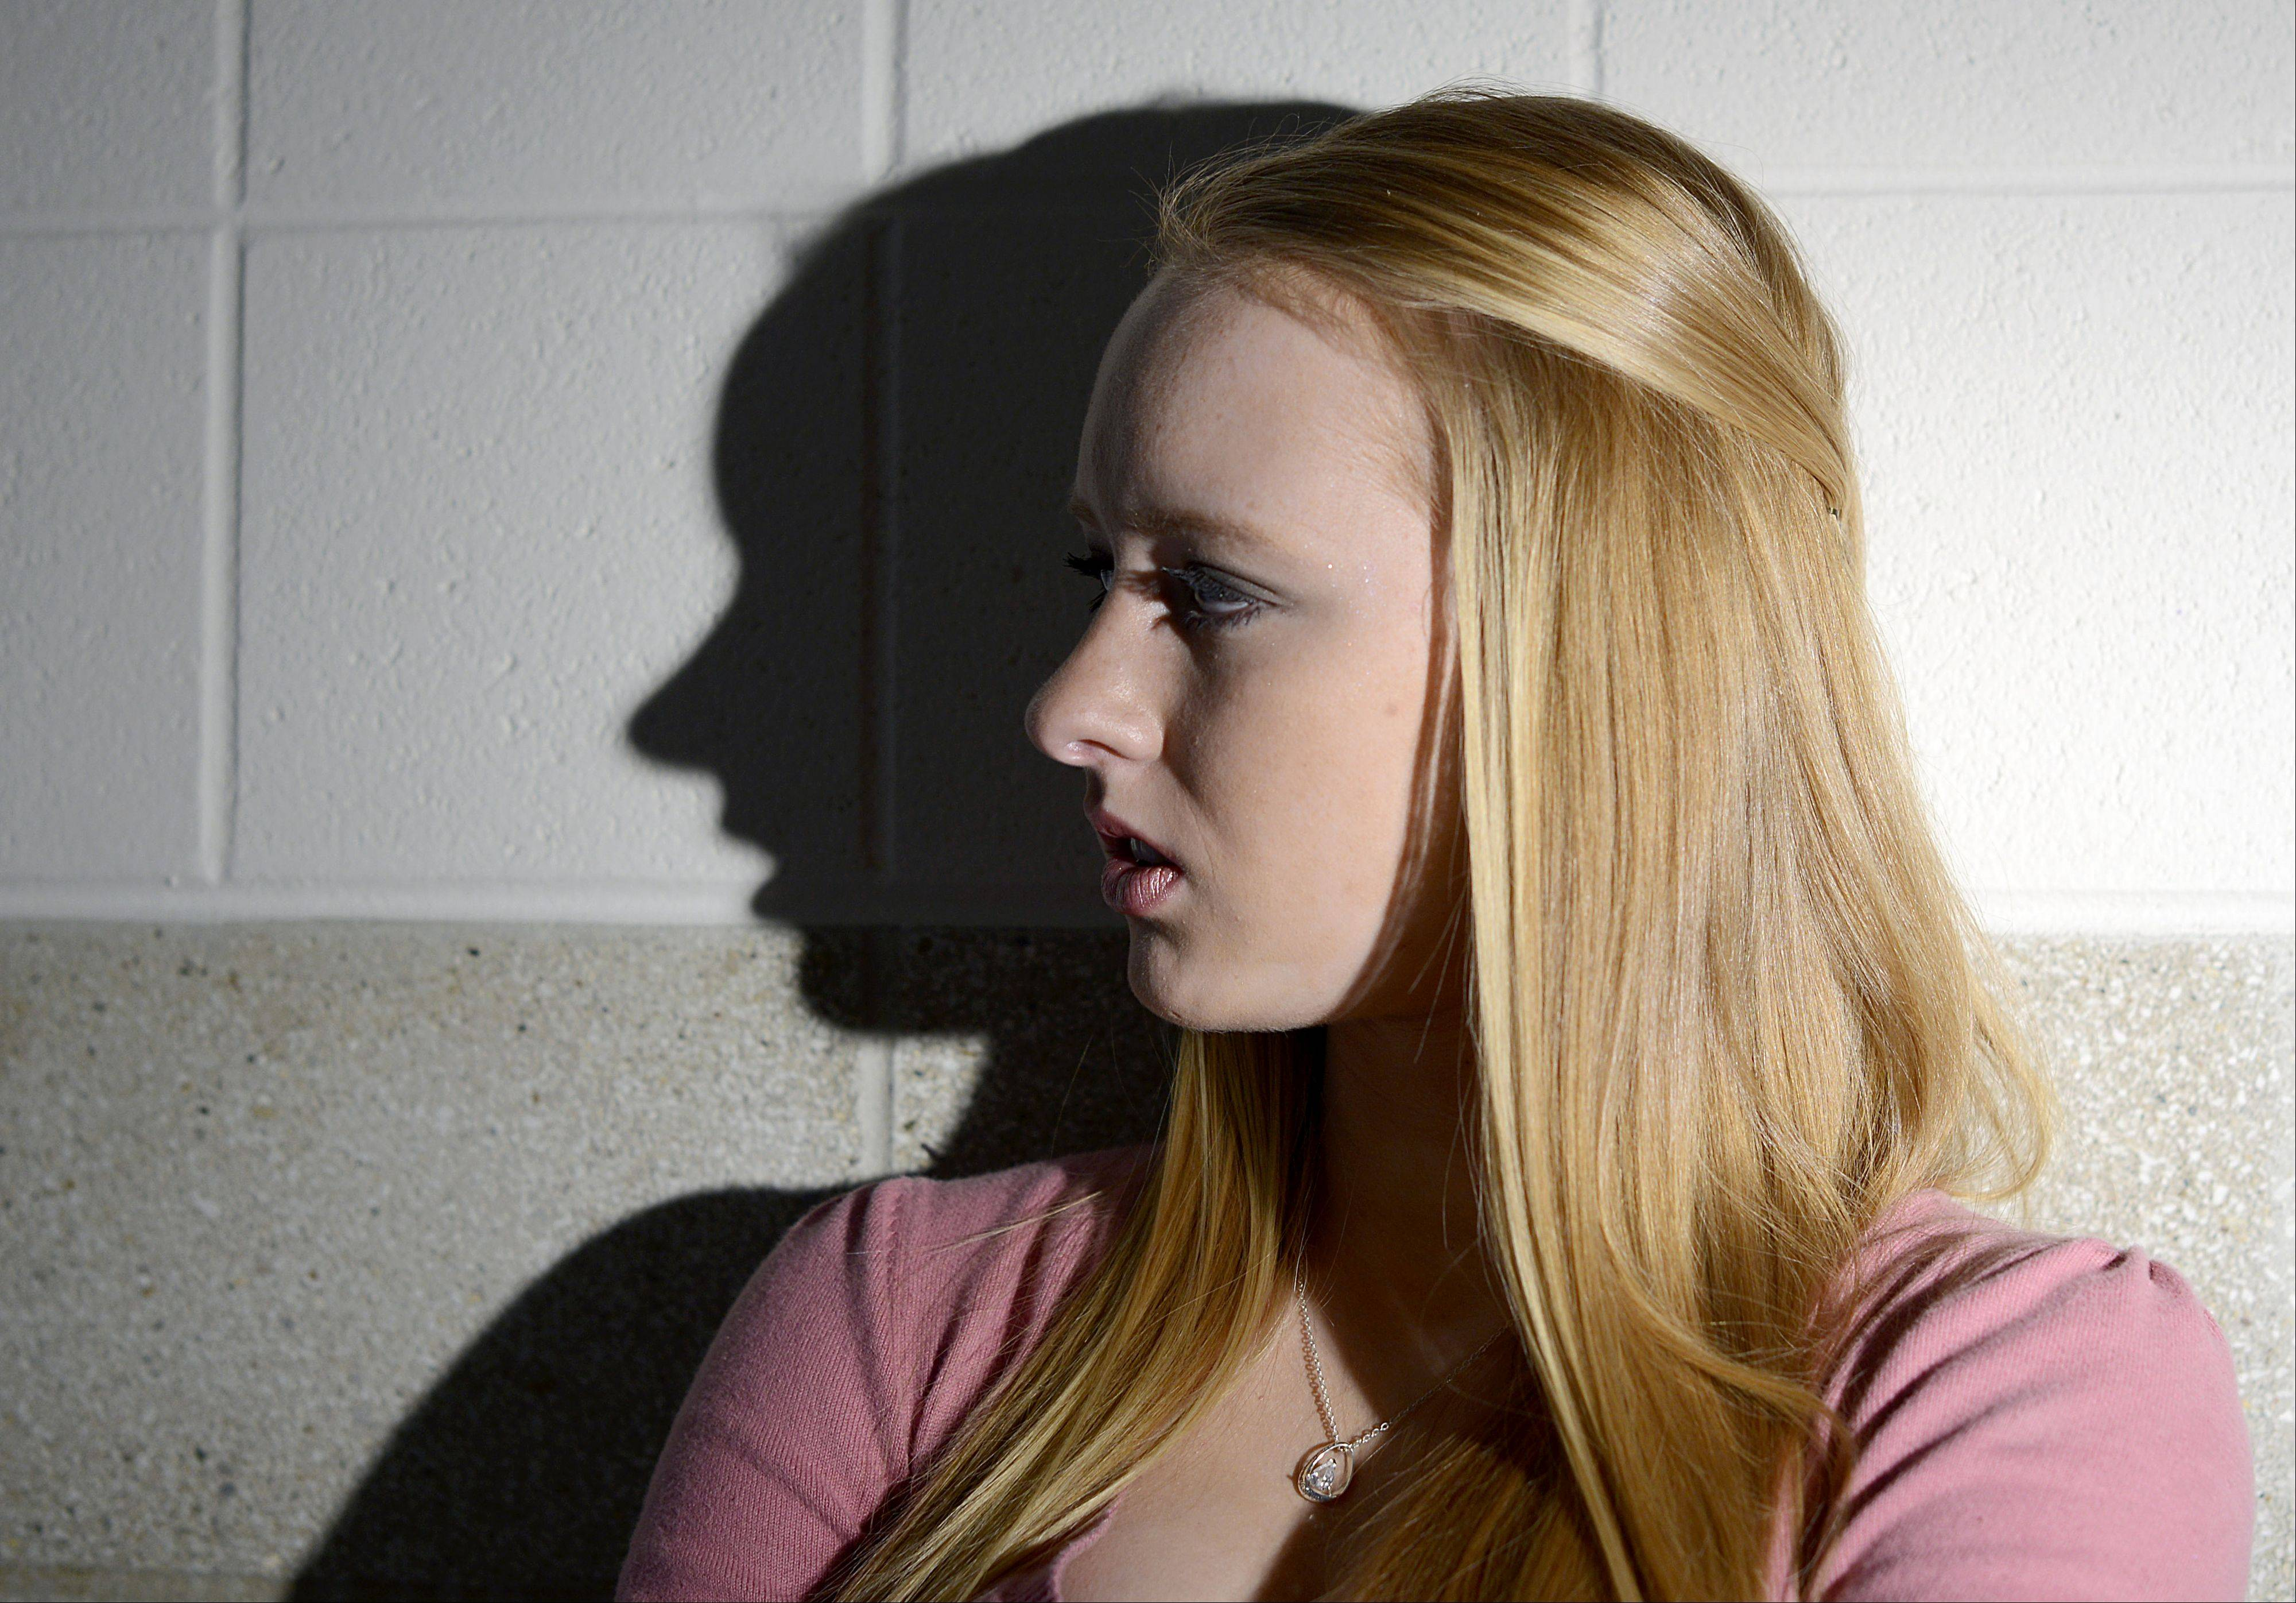 Daniela Kapusta, 17, of St. Charles has recently been featured in Vogue Italia. She had spent the past three years at St. Charles East in a deep depression, a product of frequent bullying by her female classmates, things have turned around in her senior year. She is a student adviser on the board of the Hope Club, a suicide prevention club.